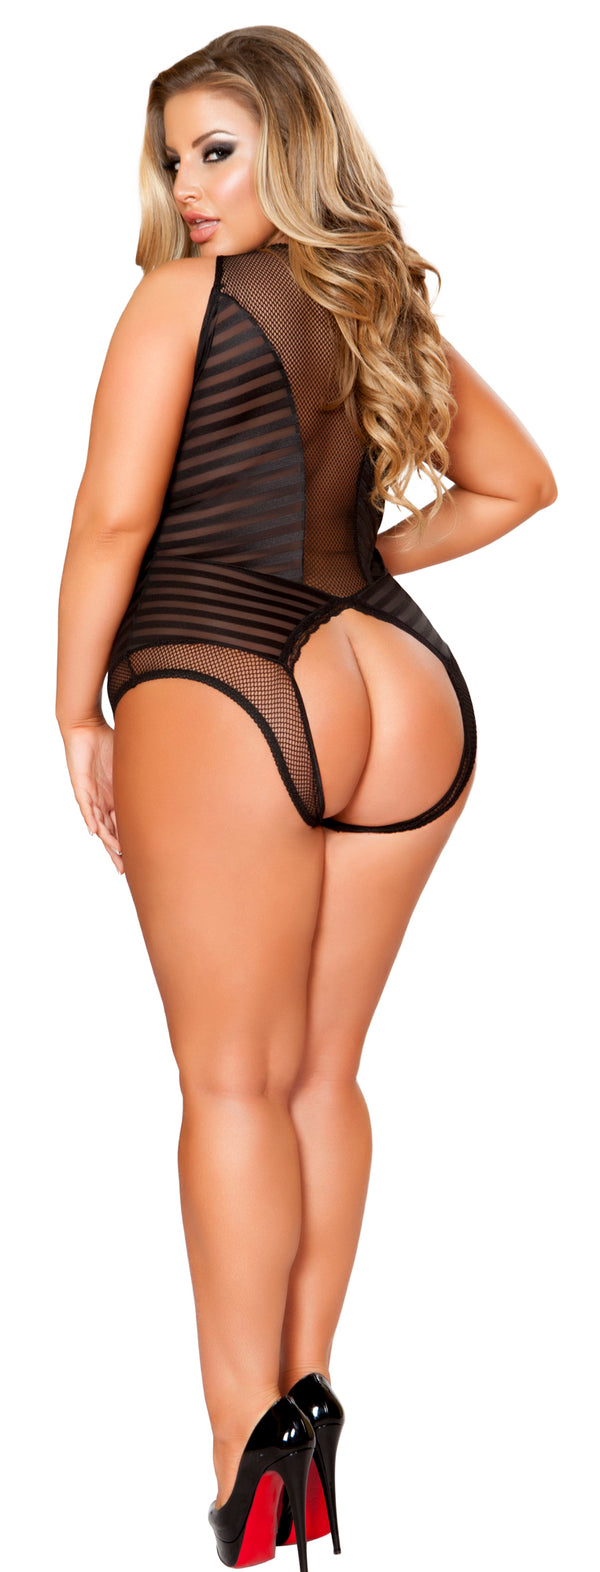 Crotchless Cut Out Plus Size Teddy RM-LI154-PLUS back